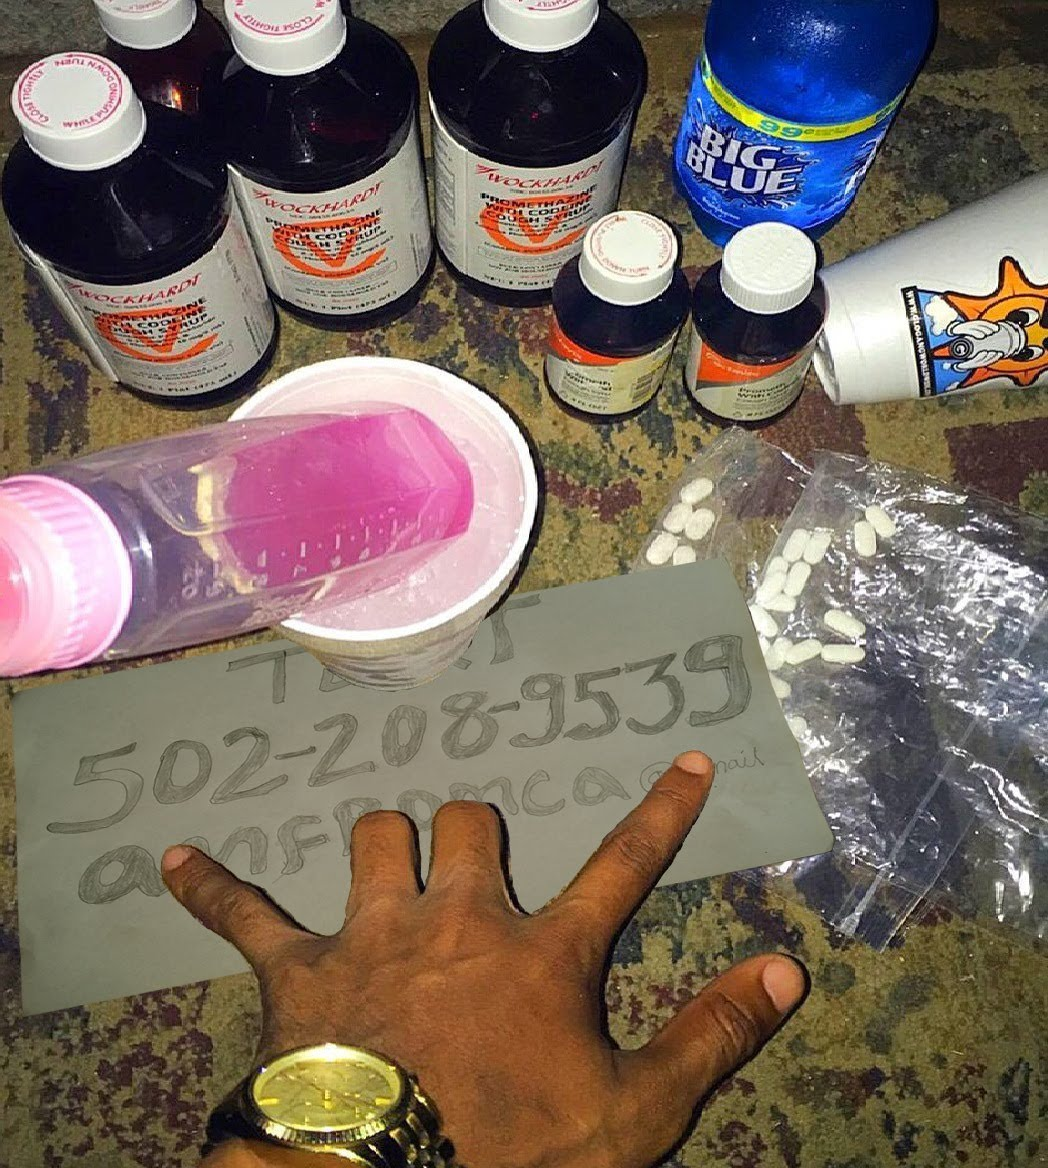 Wock n Hitech cough syrup..